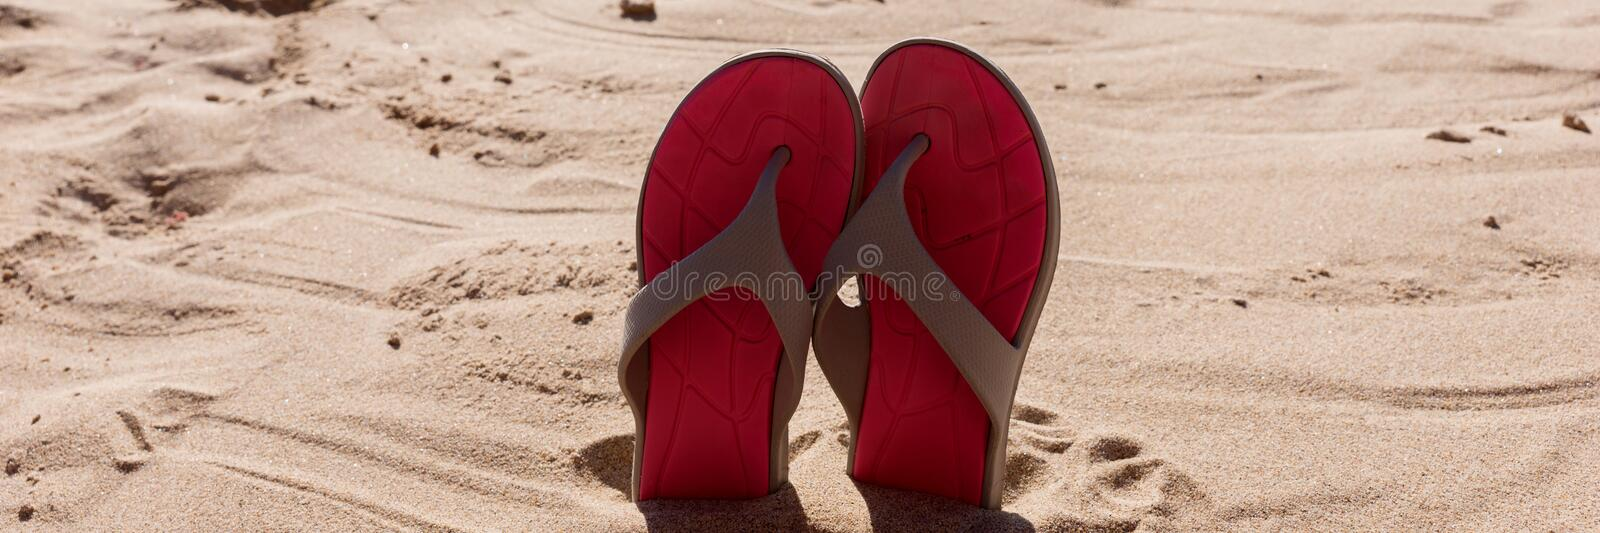 Pair flip flops in the sand of a beach royalty free stock images